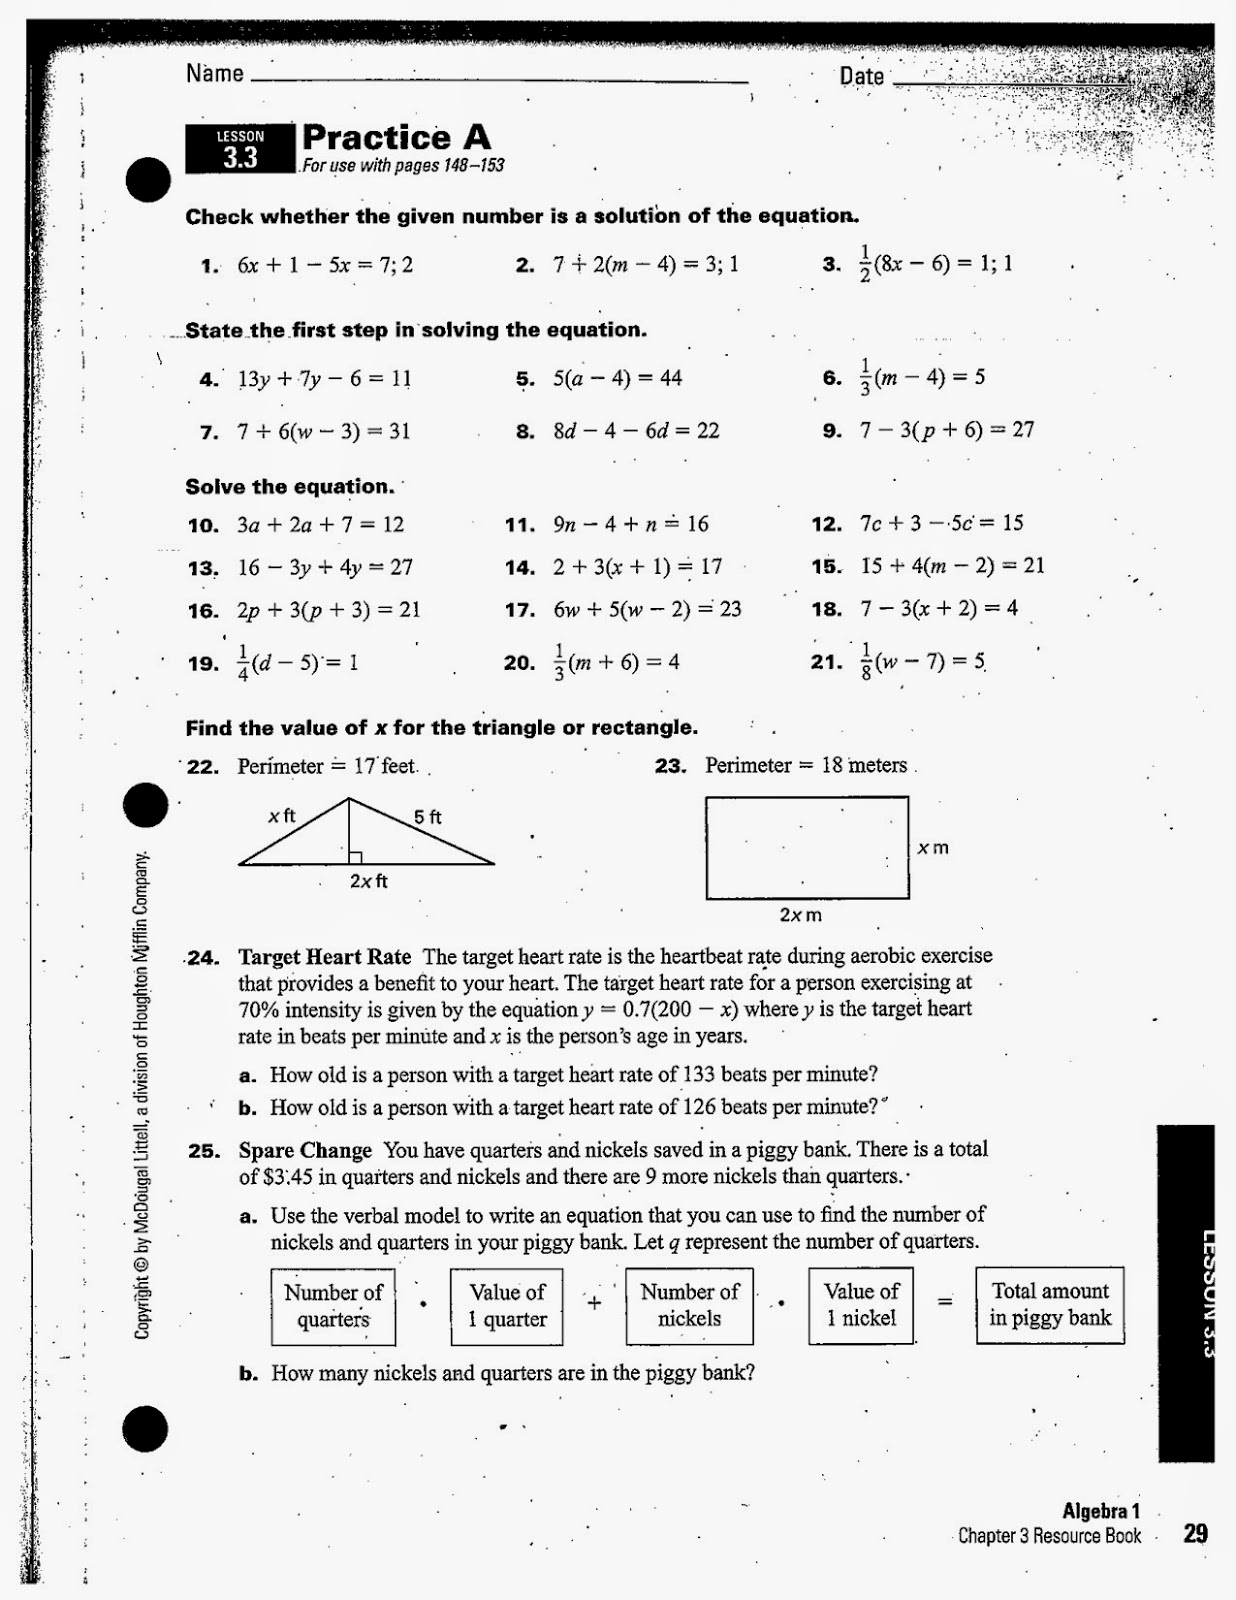 Heidemann 8th Grade Math Algebra 1 Hw 8 26